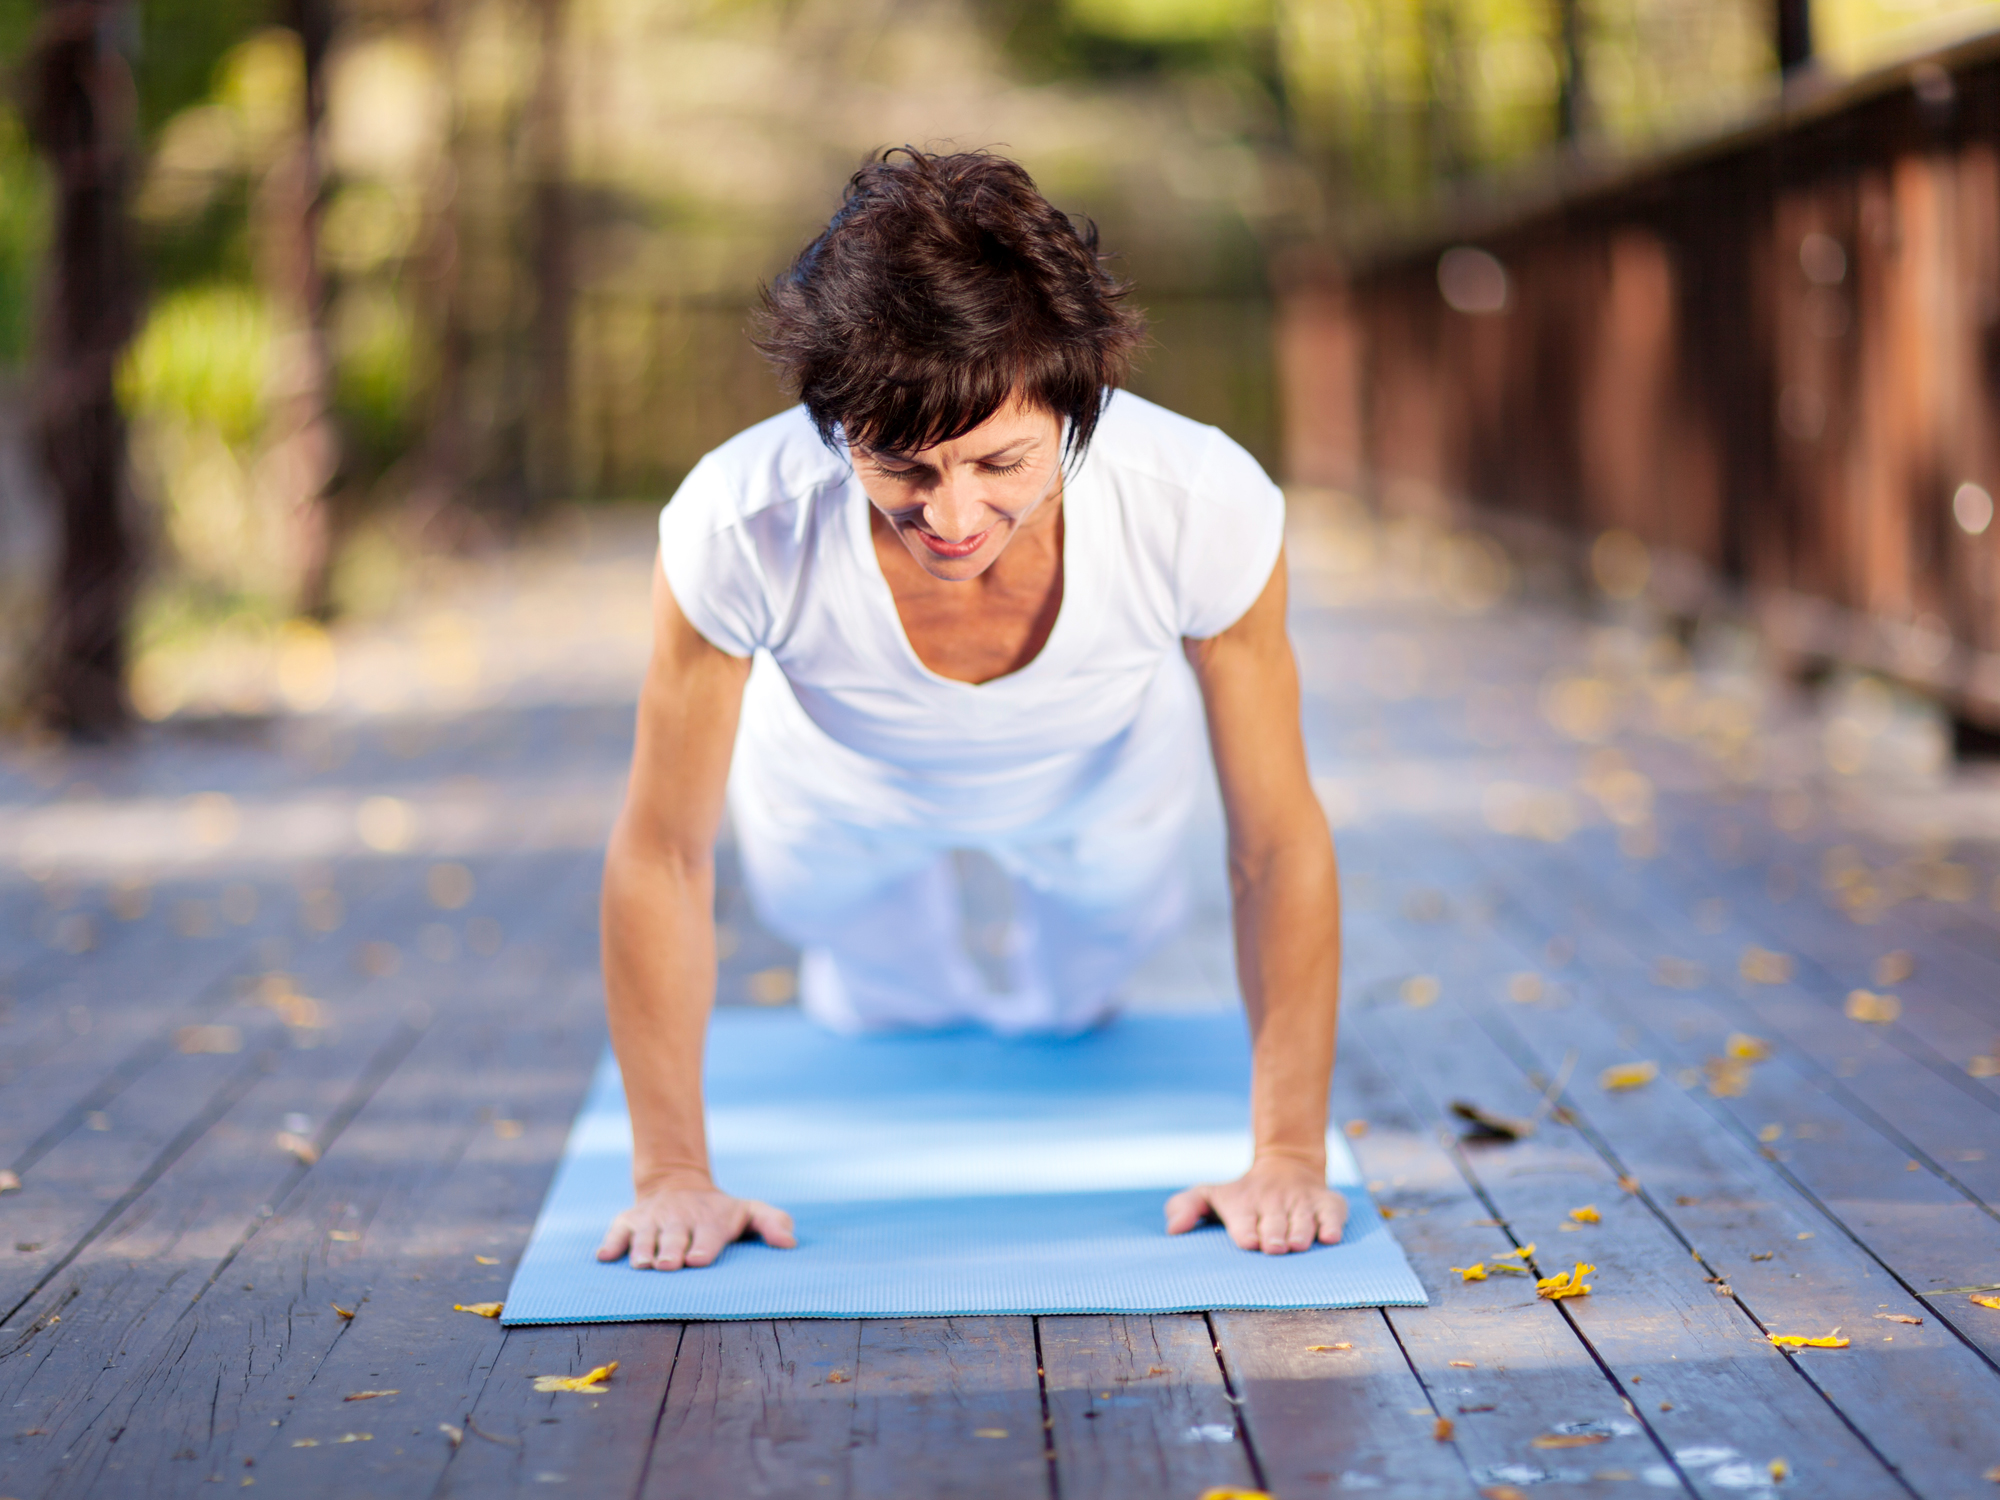 Short workouts: How to firm up and tame hormones